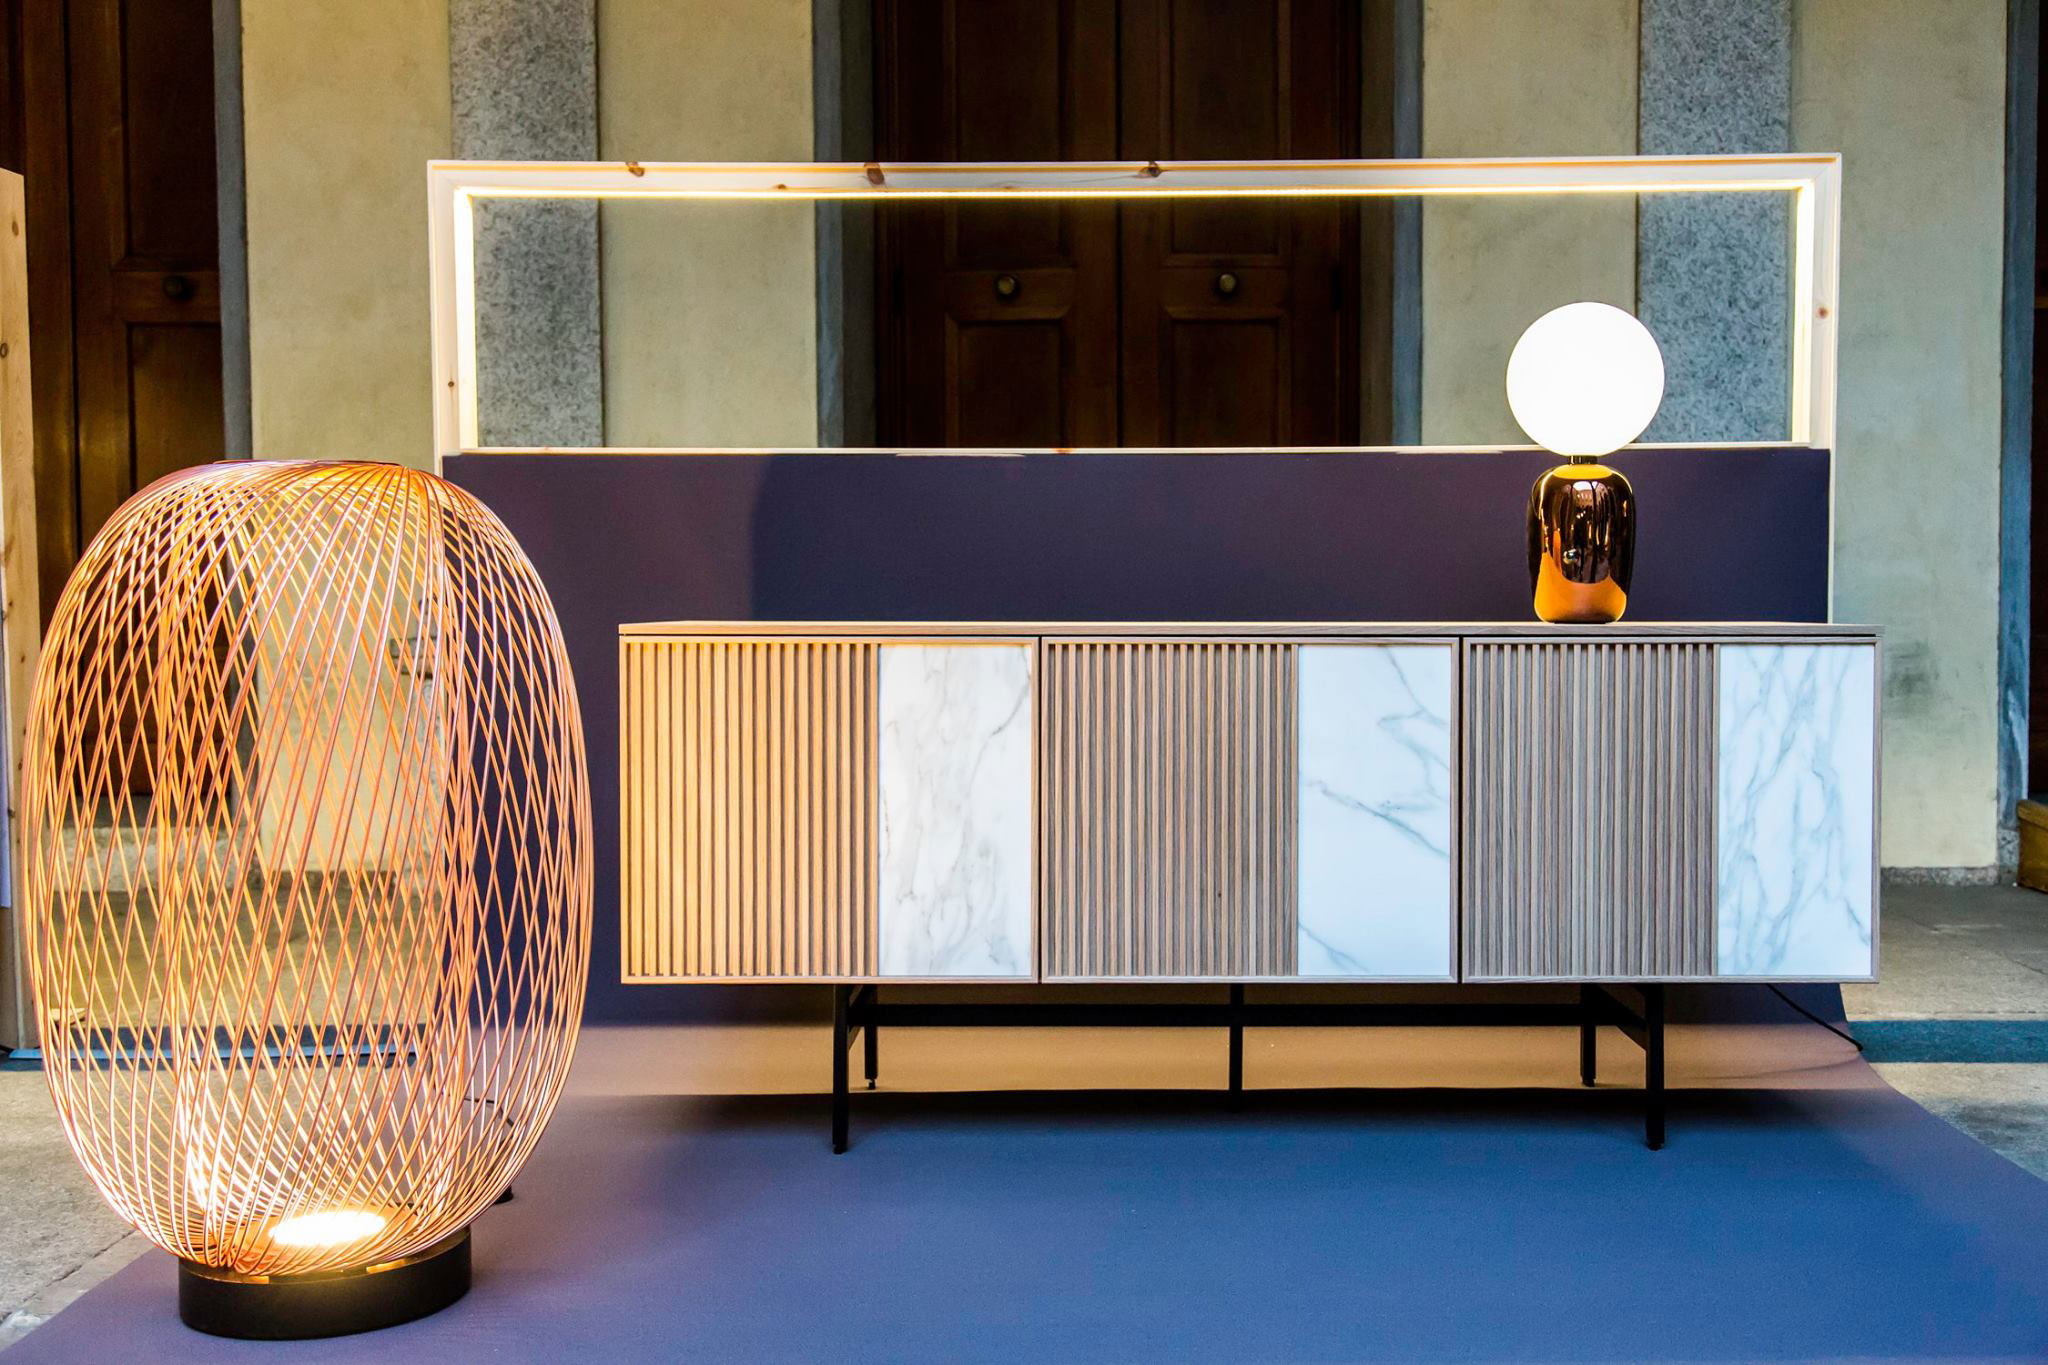 JAZZ sideboard by Borja García for Mobenia.Photo: Courtesy of Mobenia.